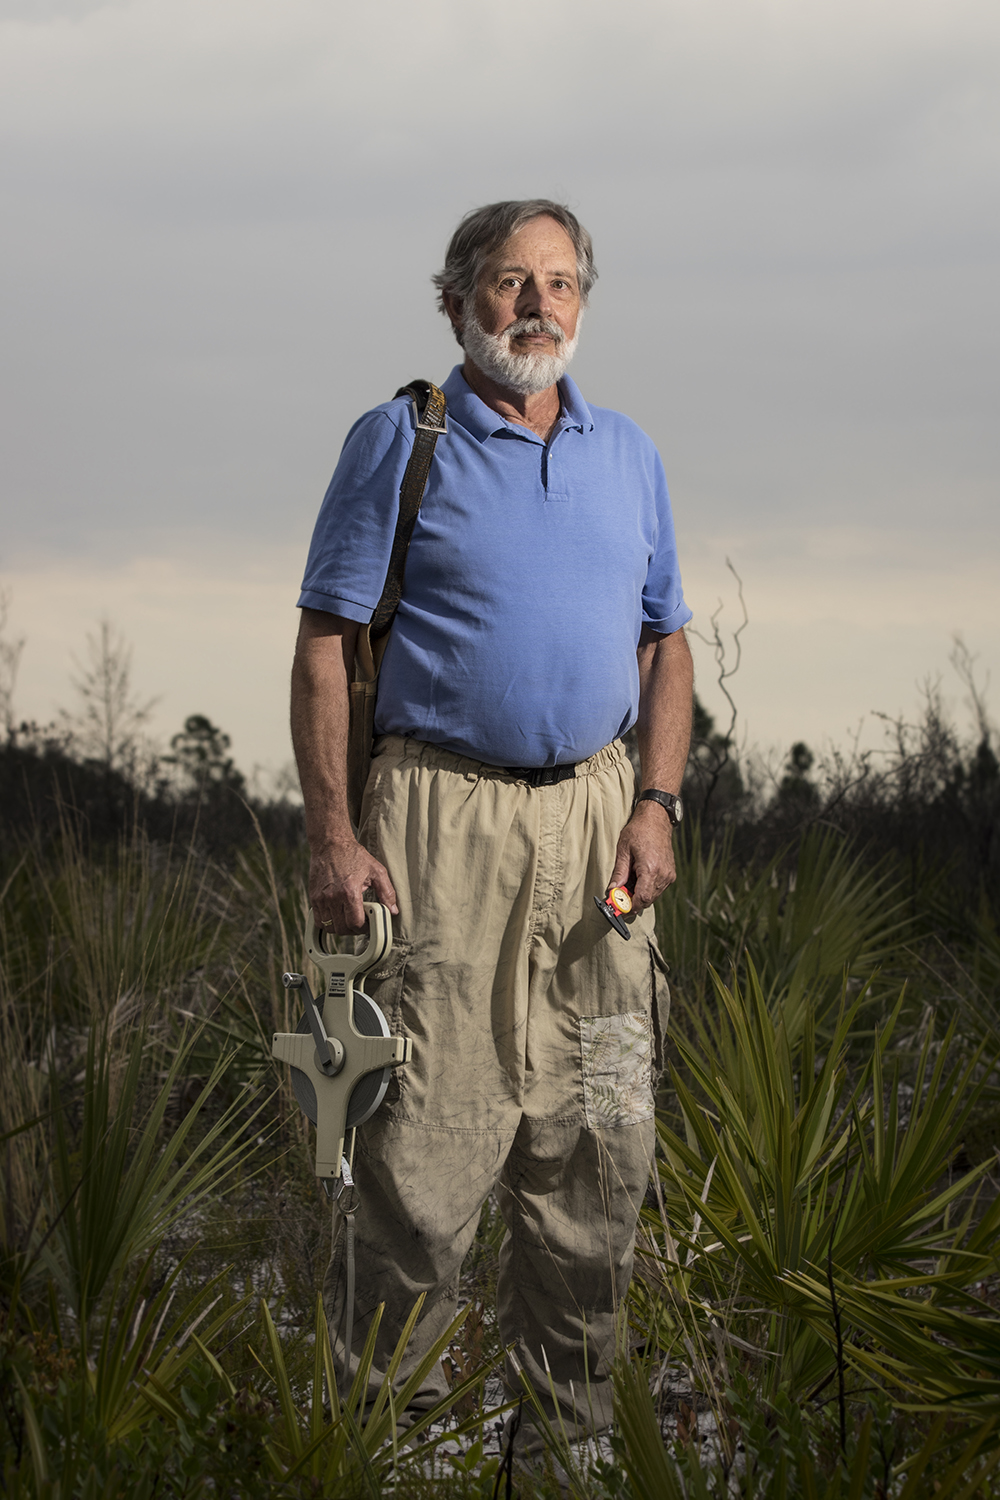 James Carrel Entomology Researcher Archbold Biological Station 2017/3/8